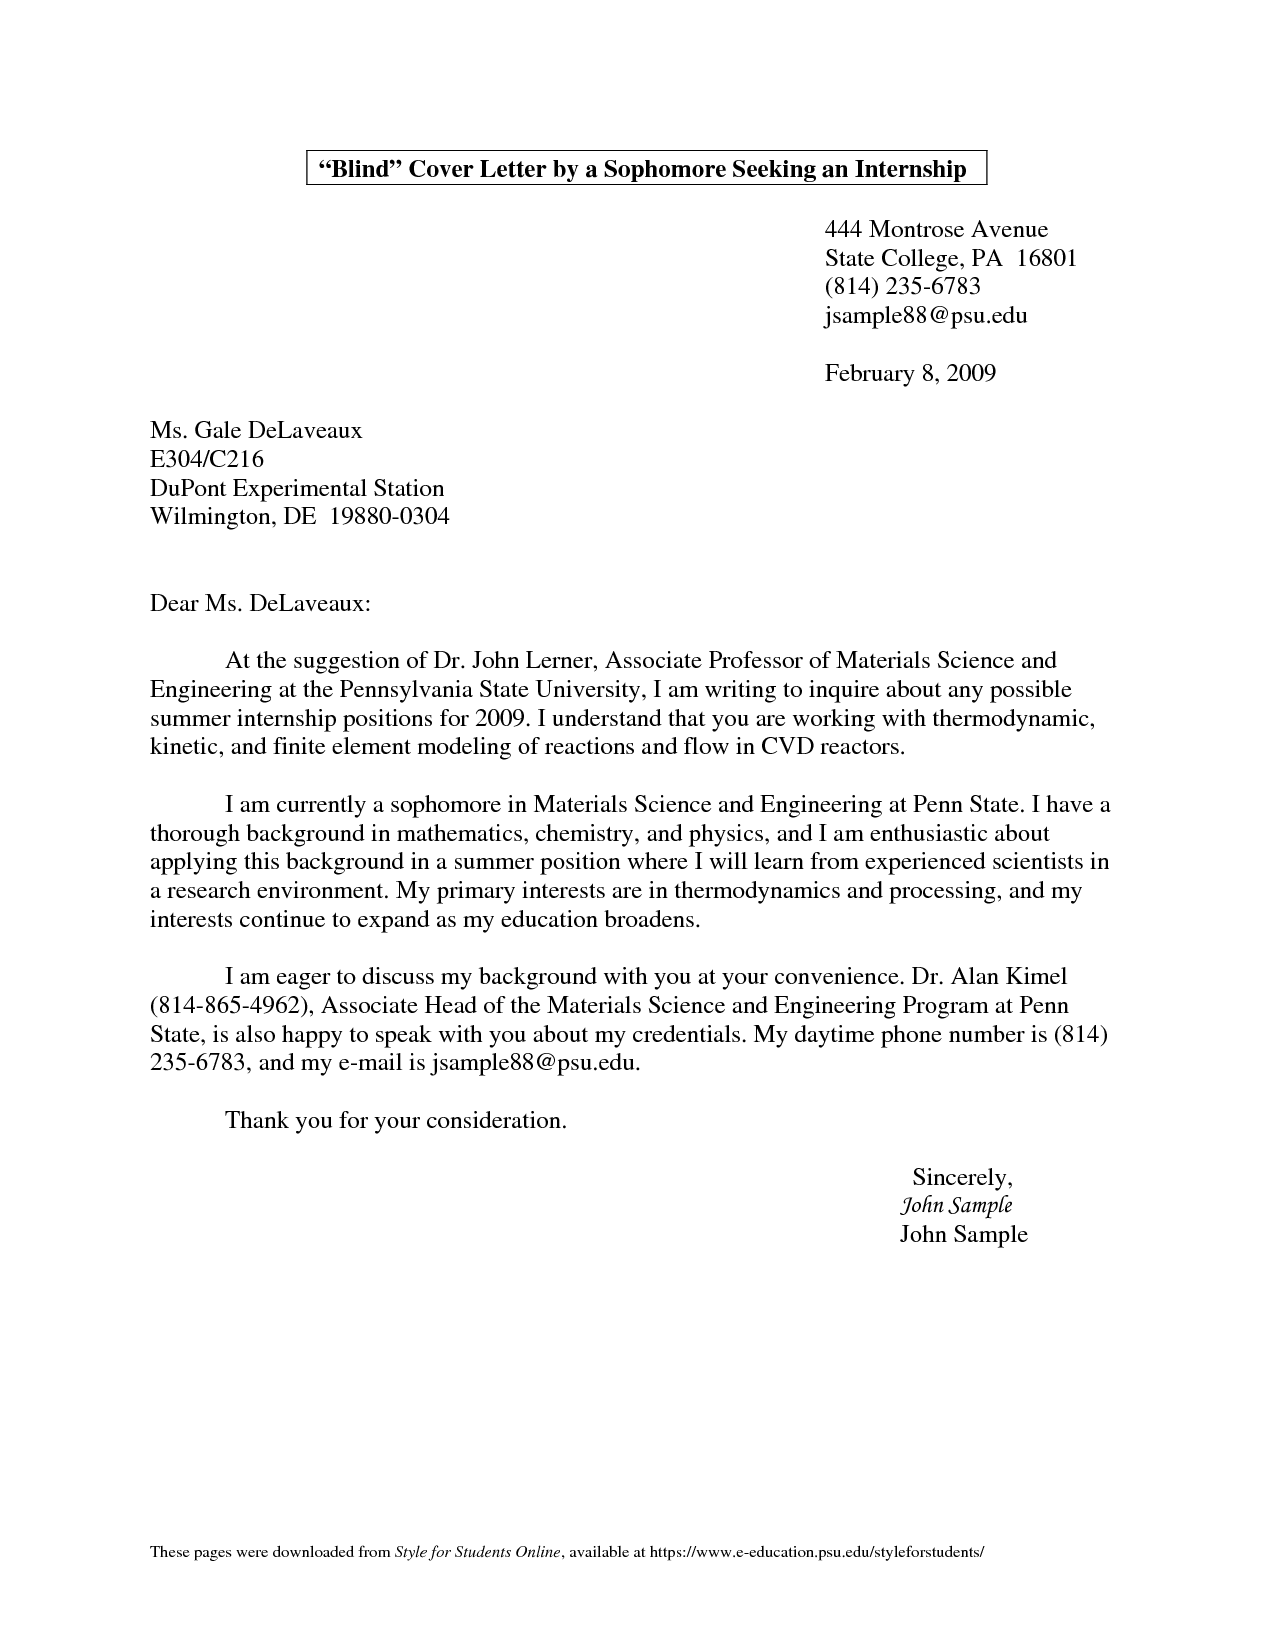 Best Cover Letter For Engineering Internship An Expert On The